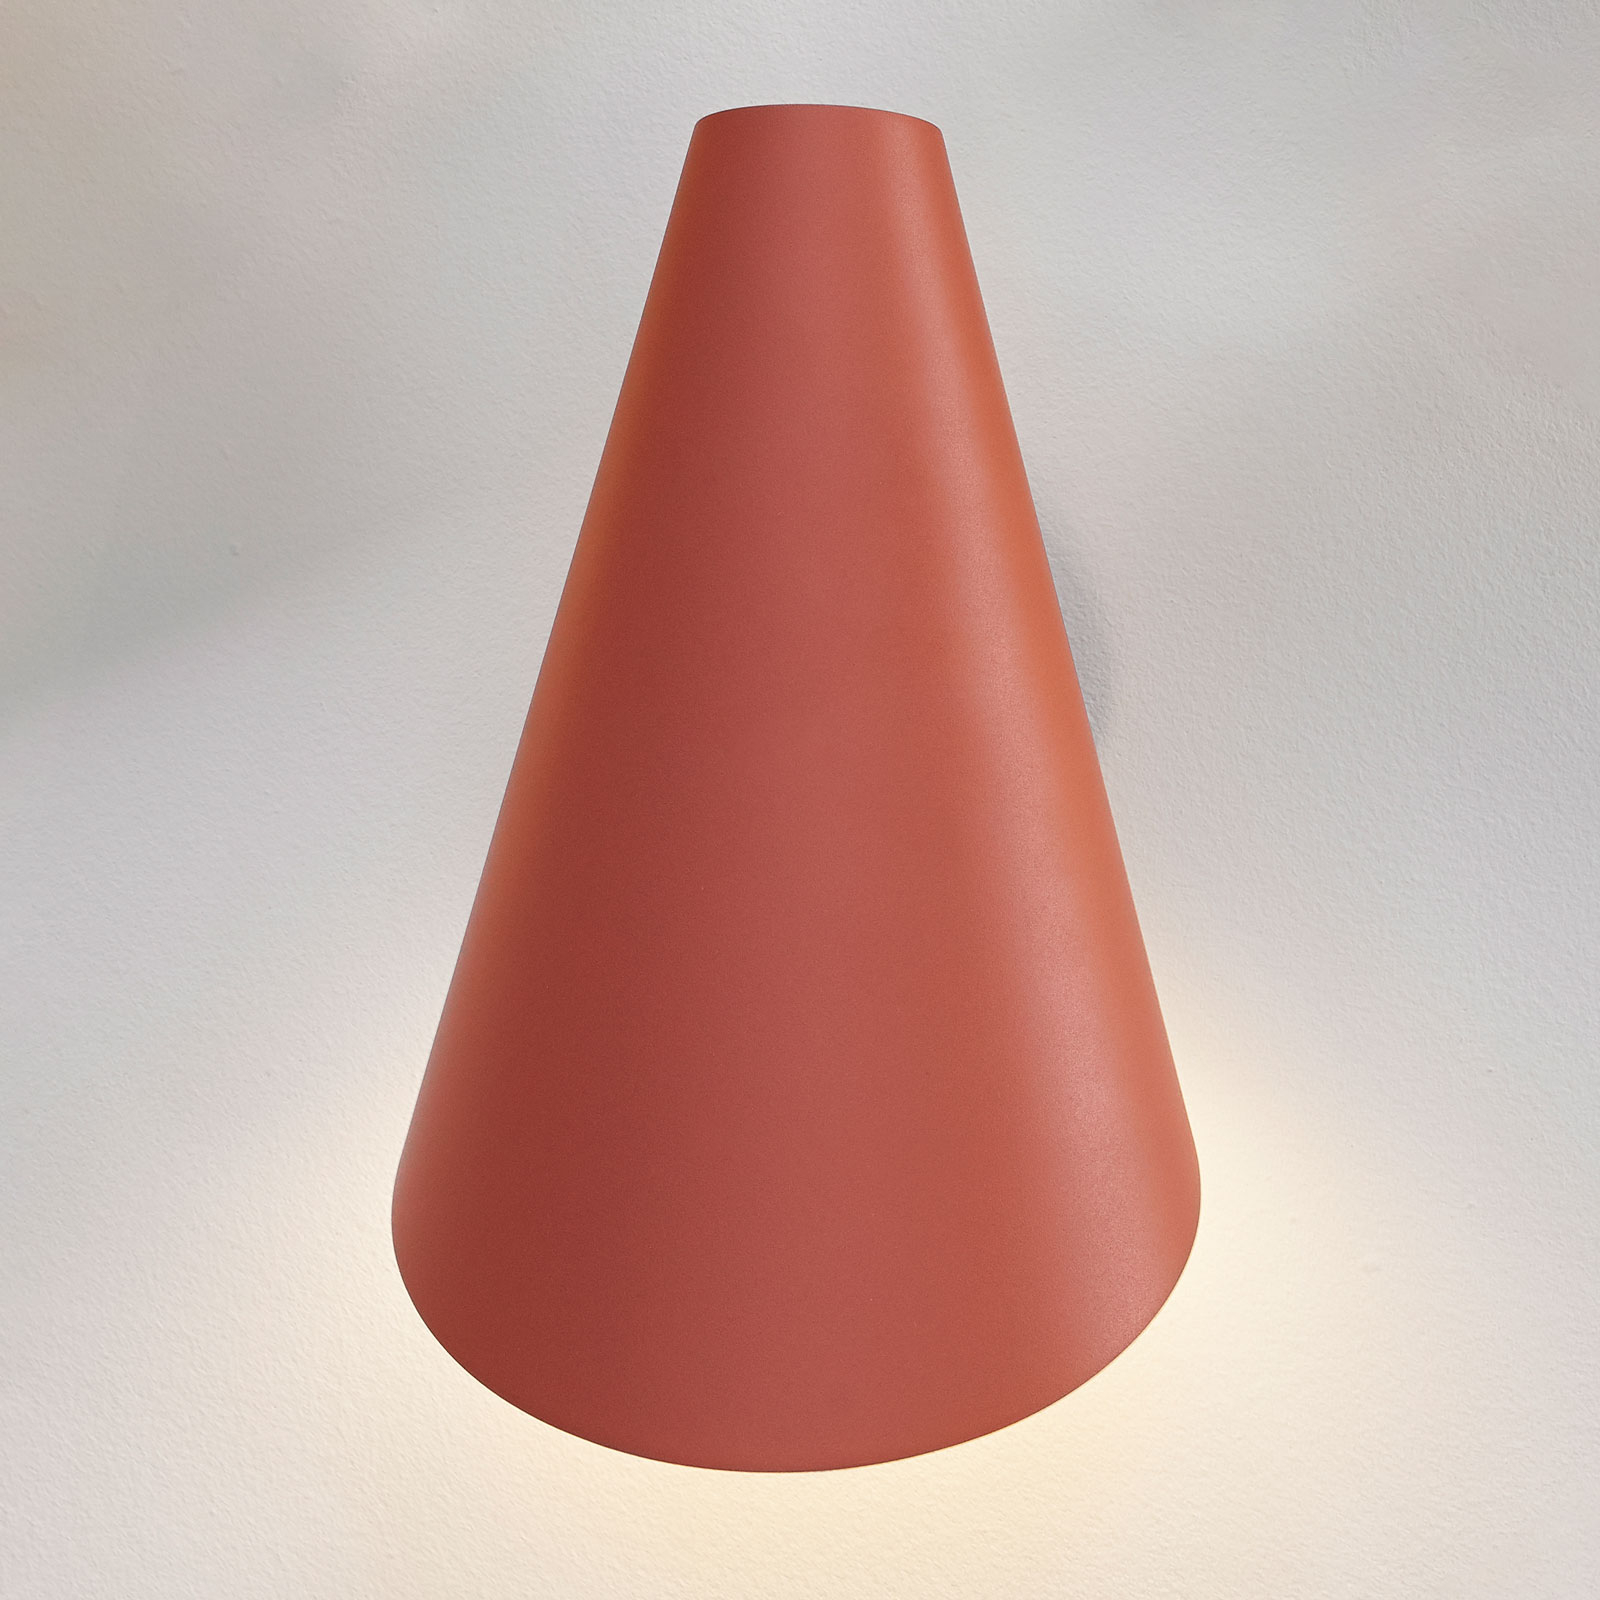 Vibia I.Cono 0720 applique, 28 cm, rouge-brune